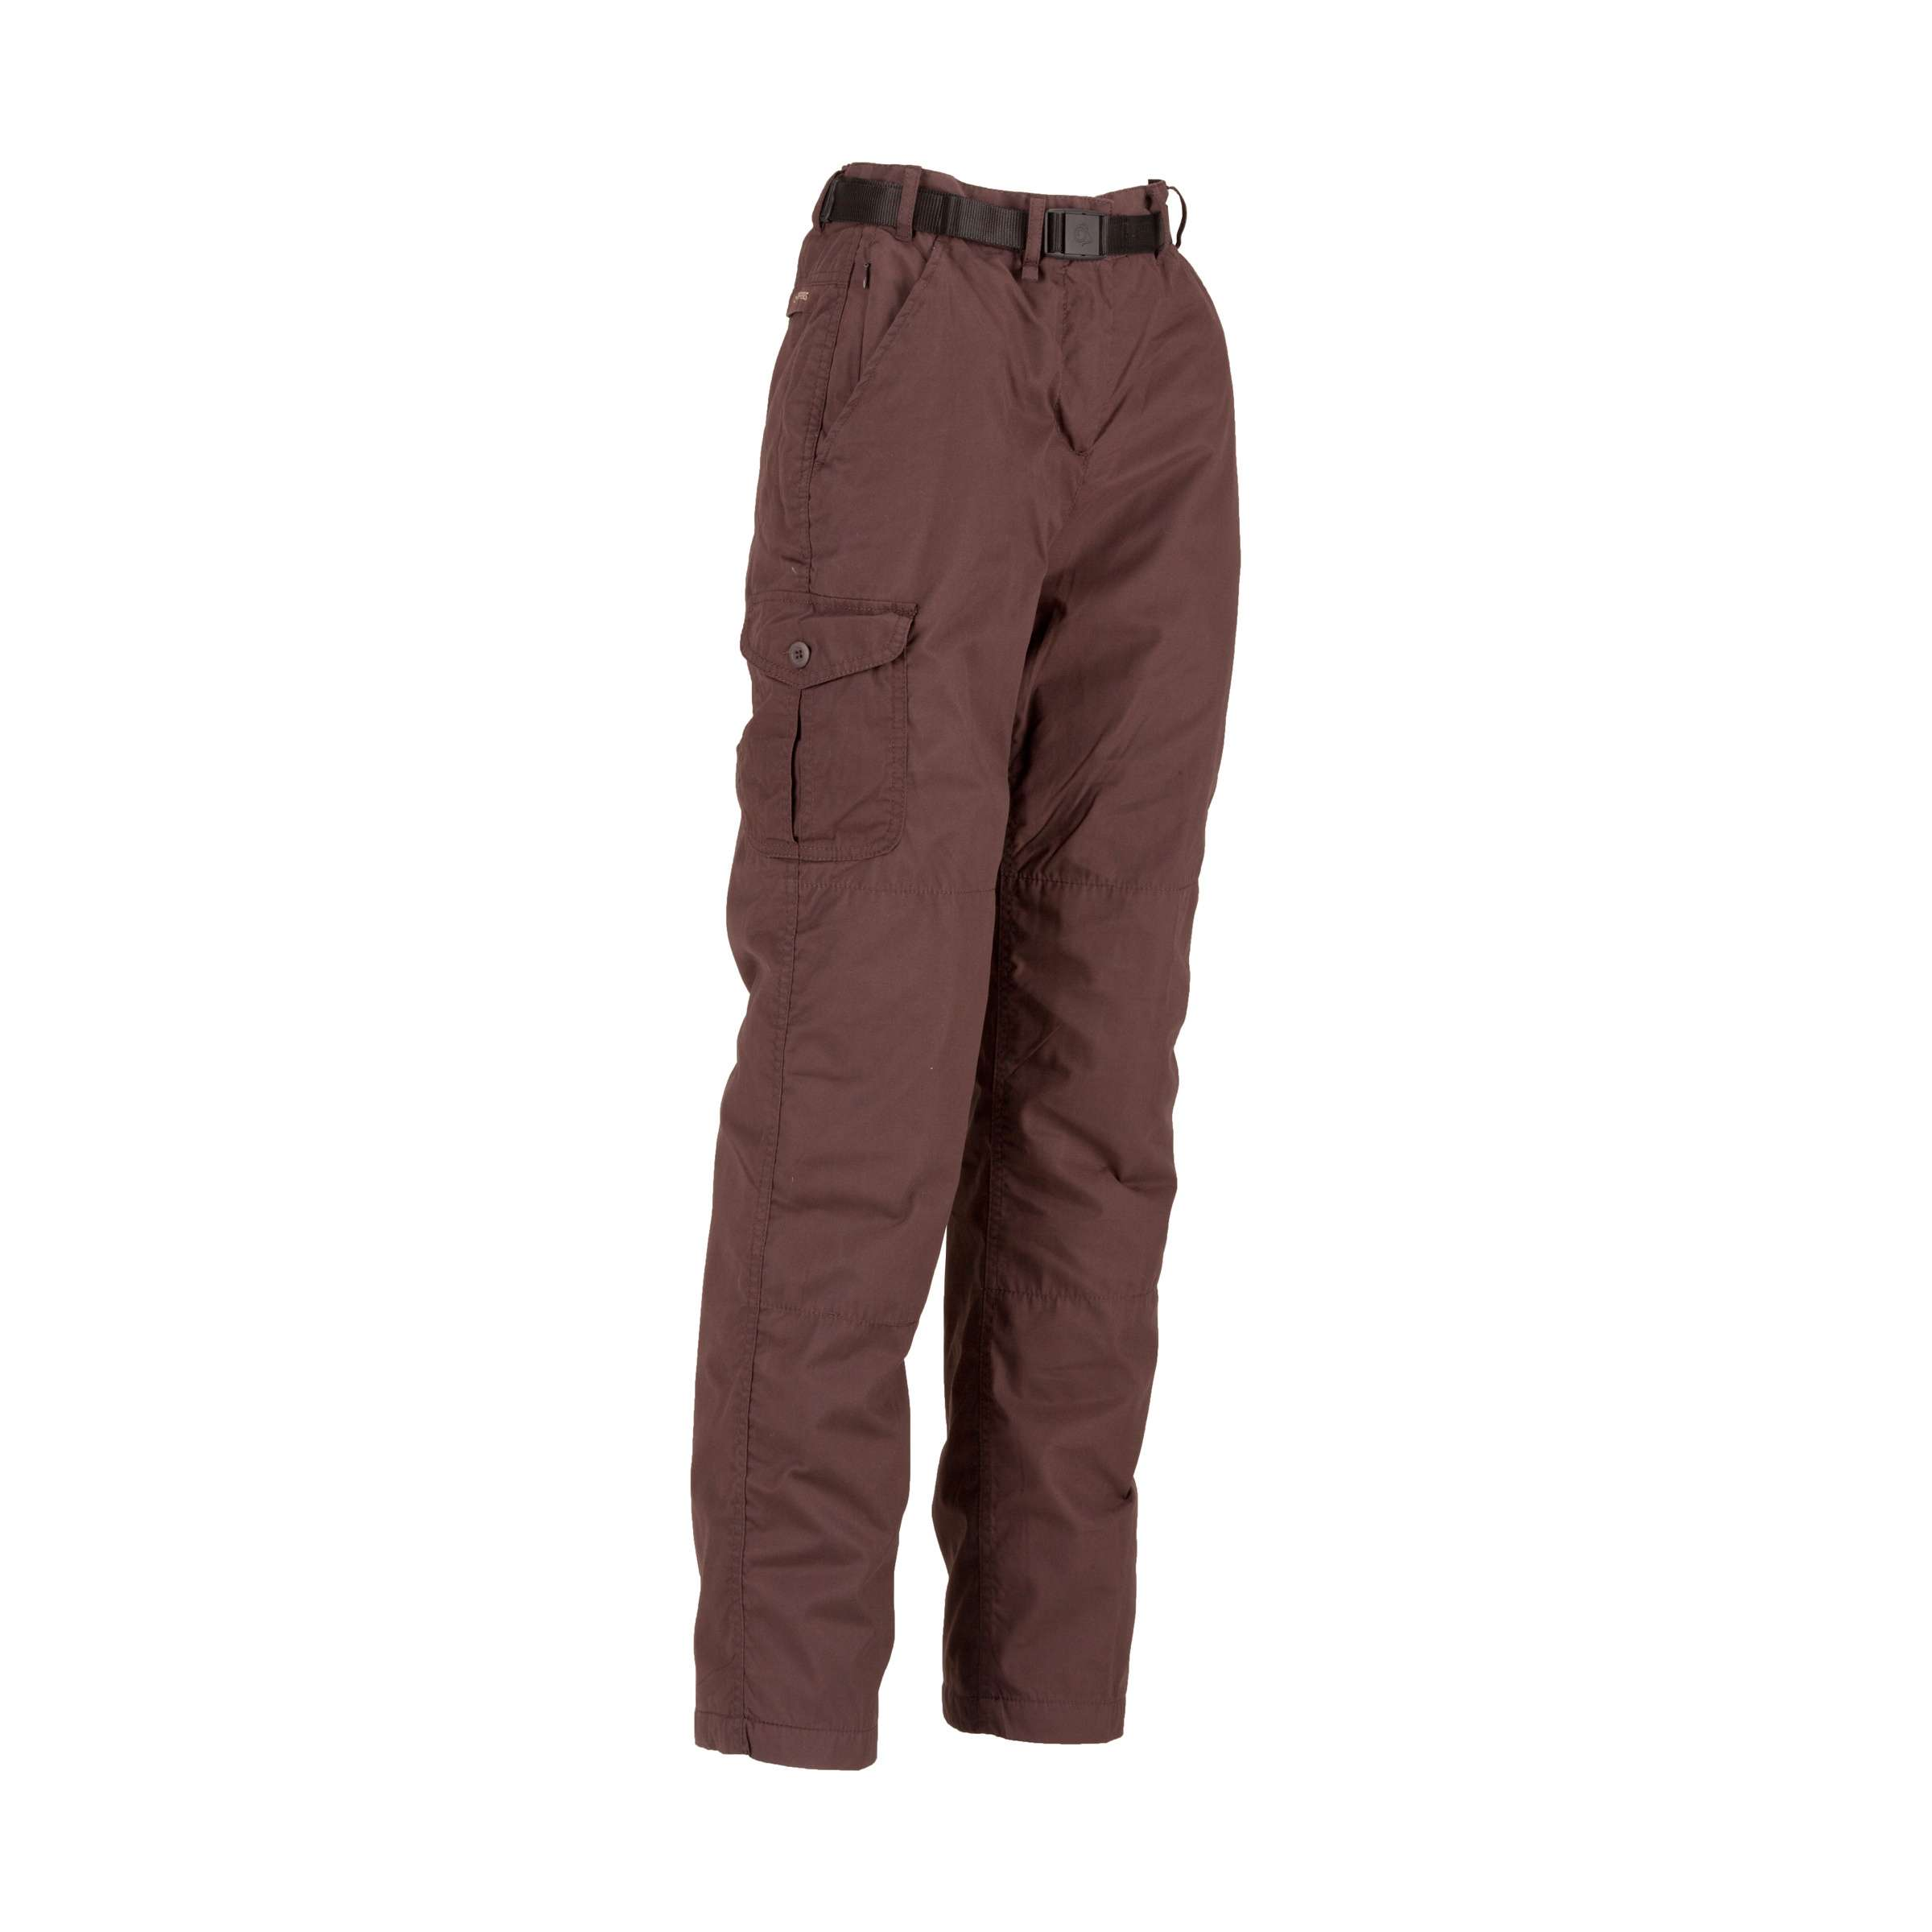 CRAGHOPPERS Women's Kiwi Lined Trousers